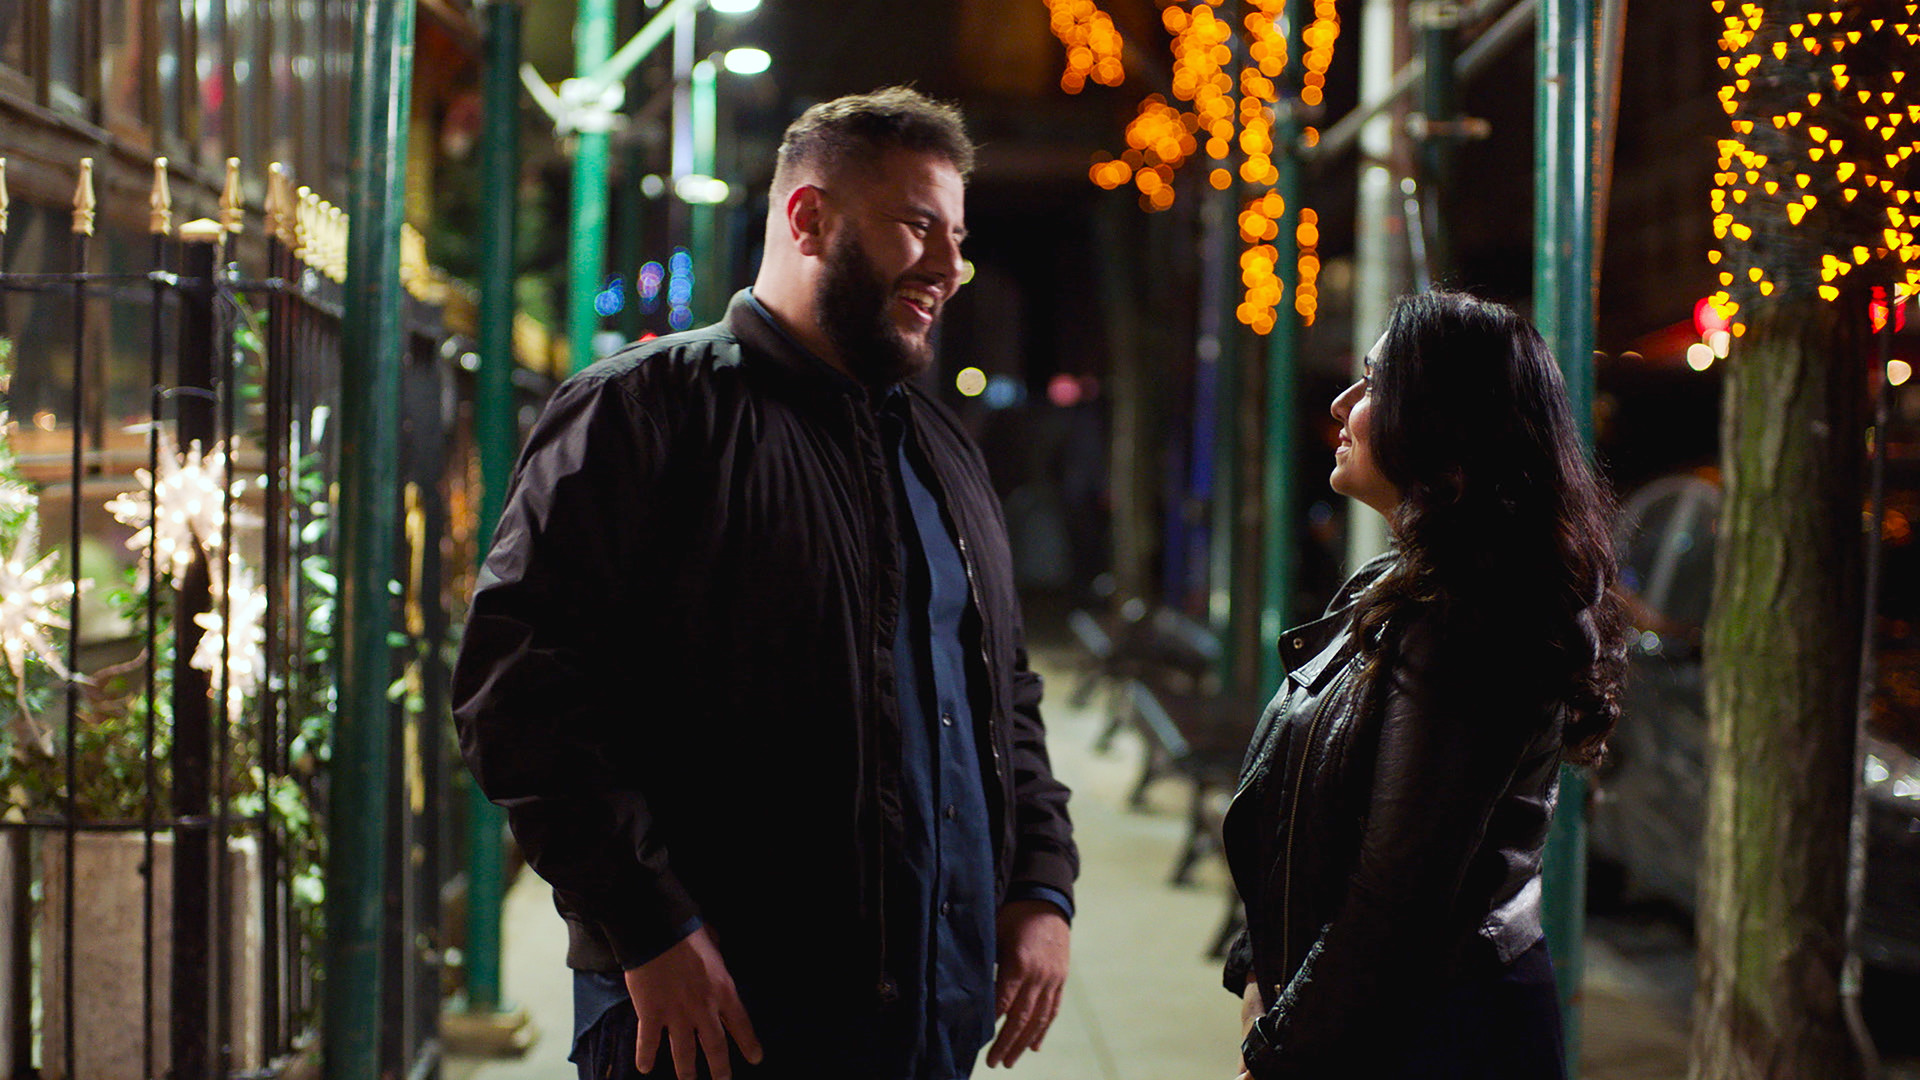 Two people smiling and talking outside at night